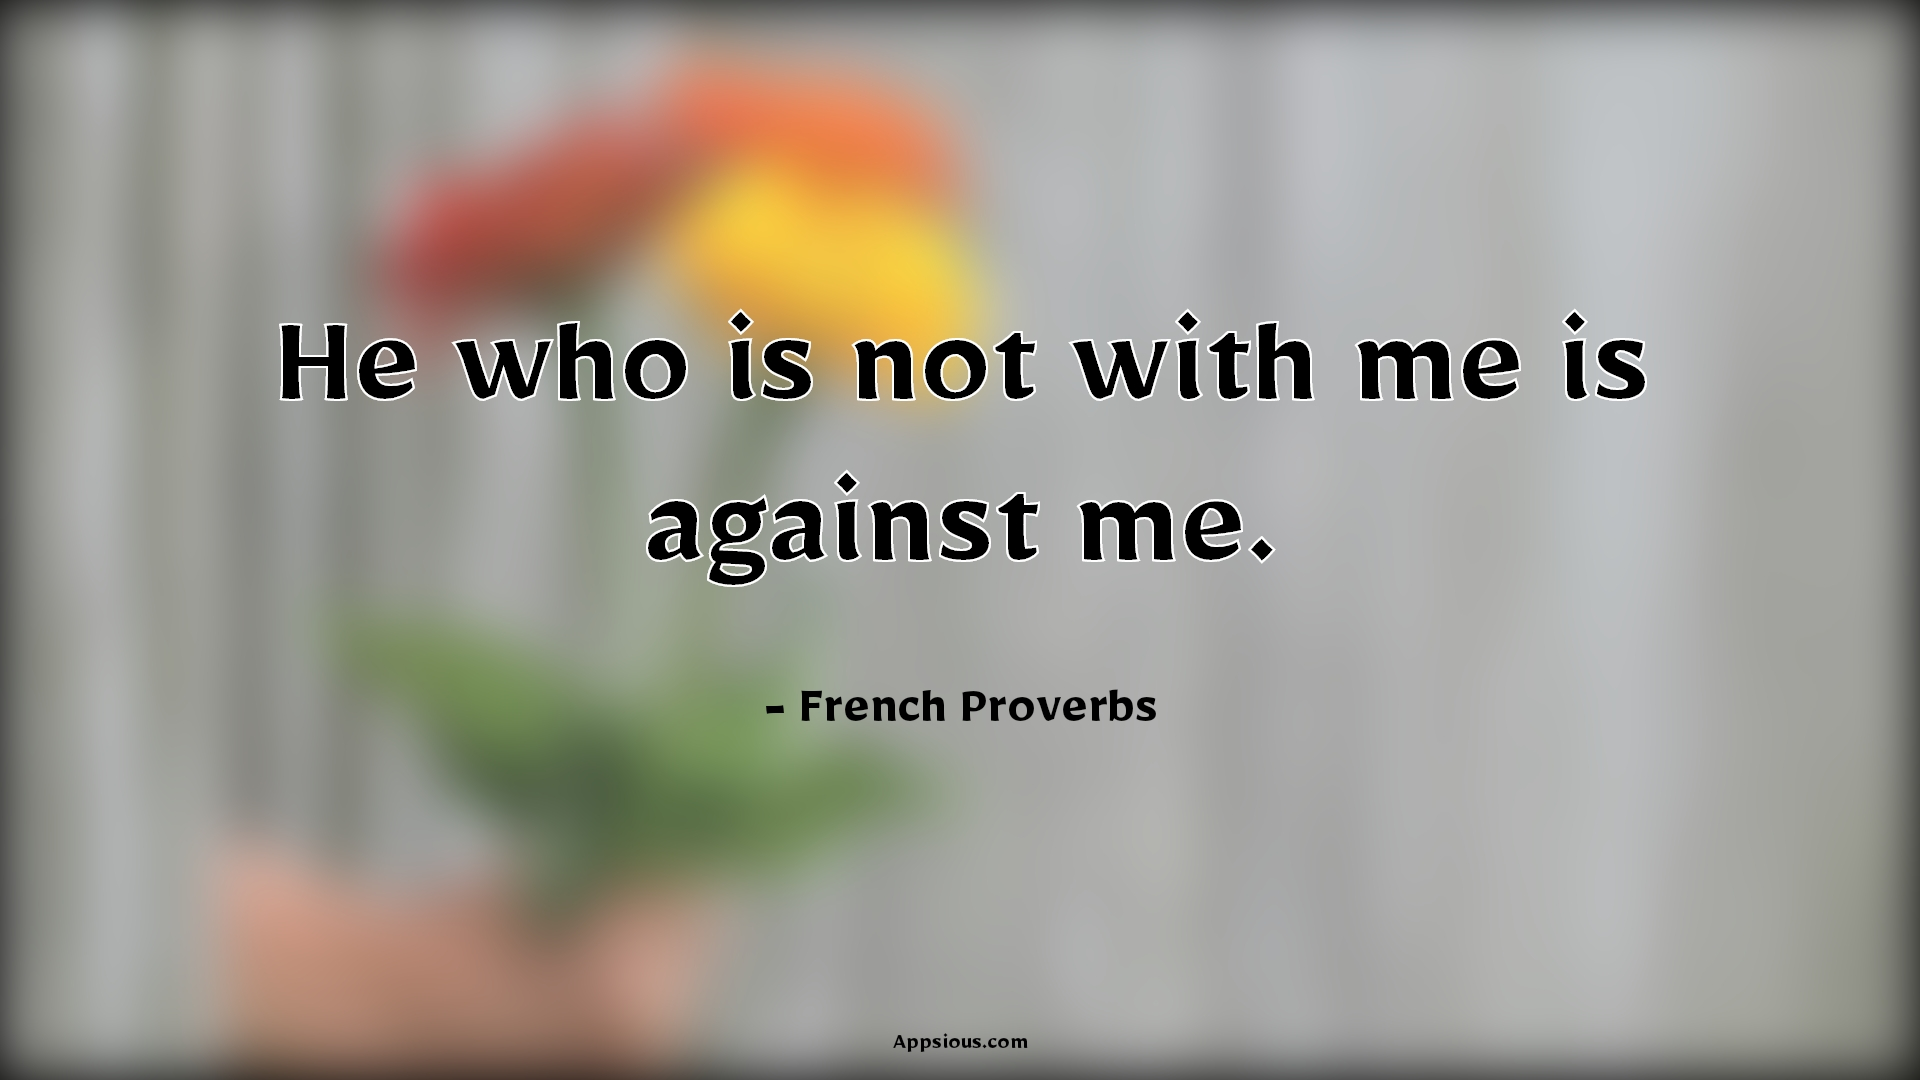 He who is not with me is against me.